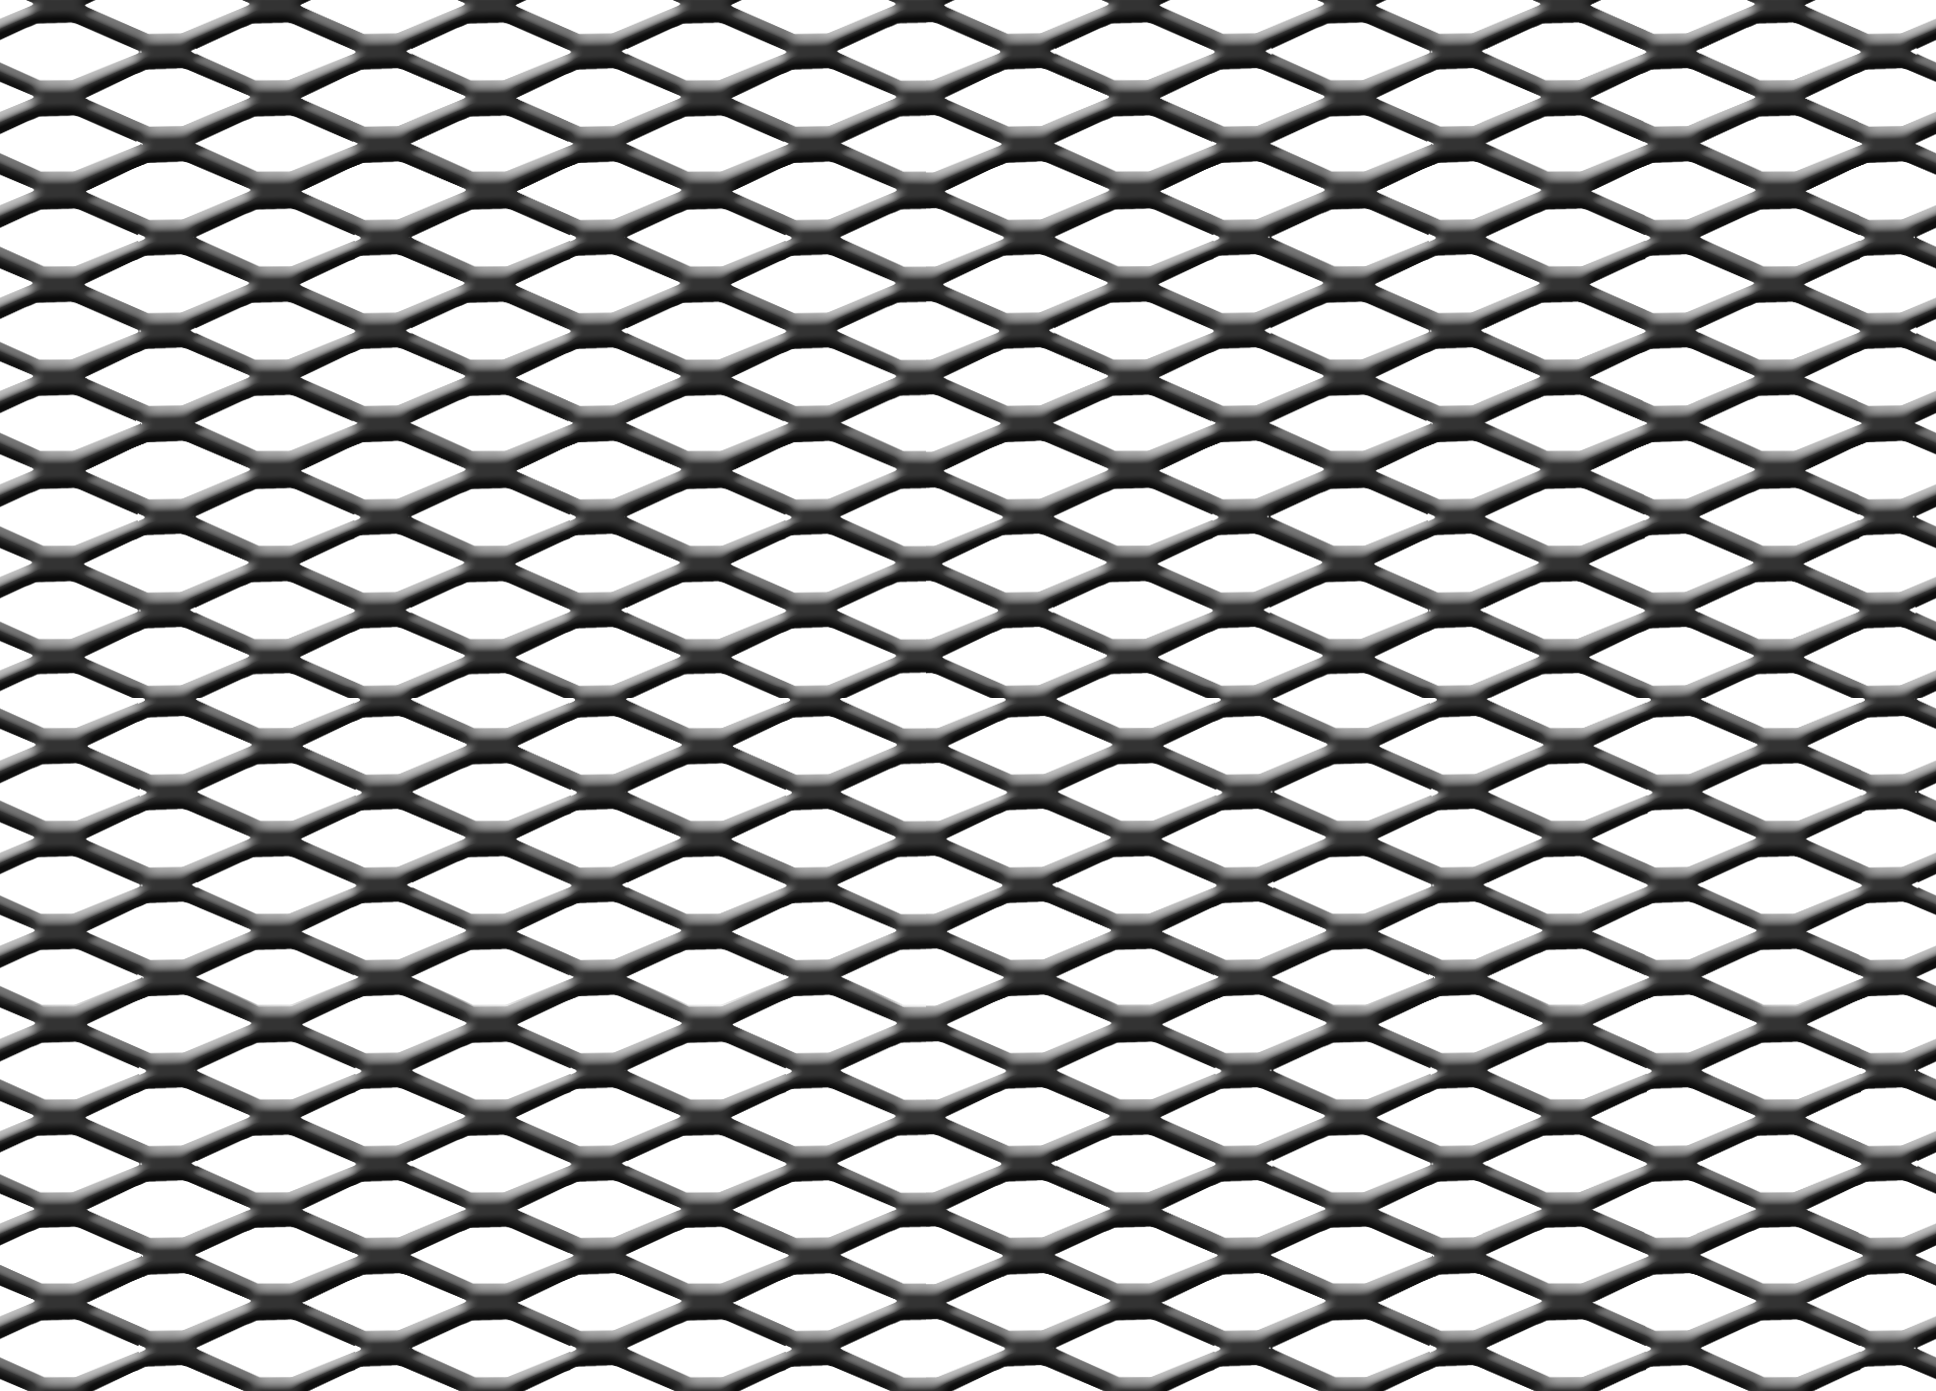 netting vector net fabric